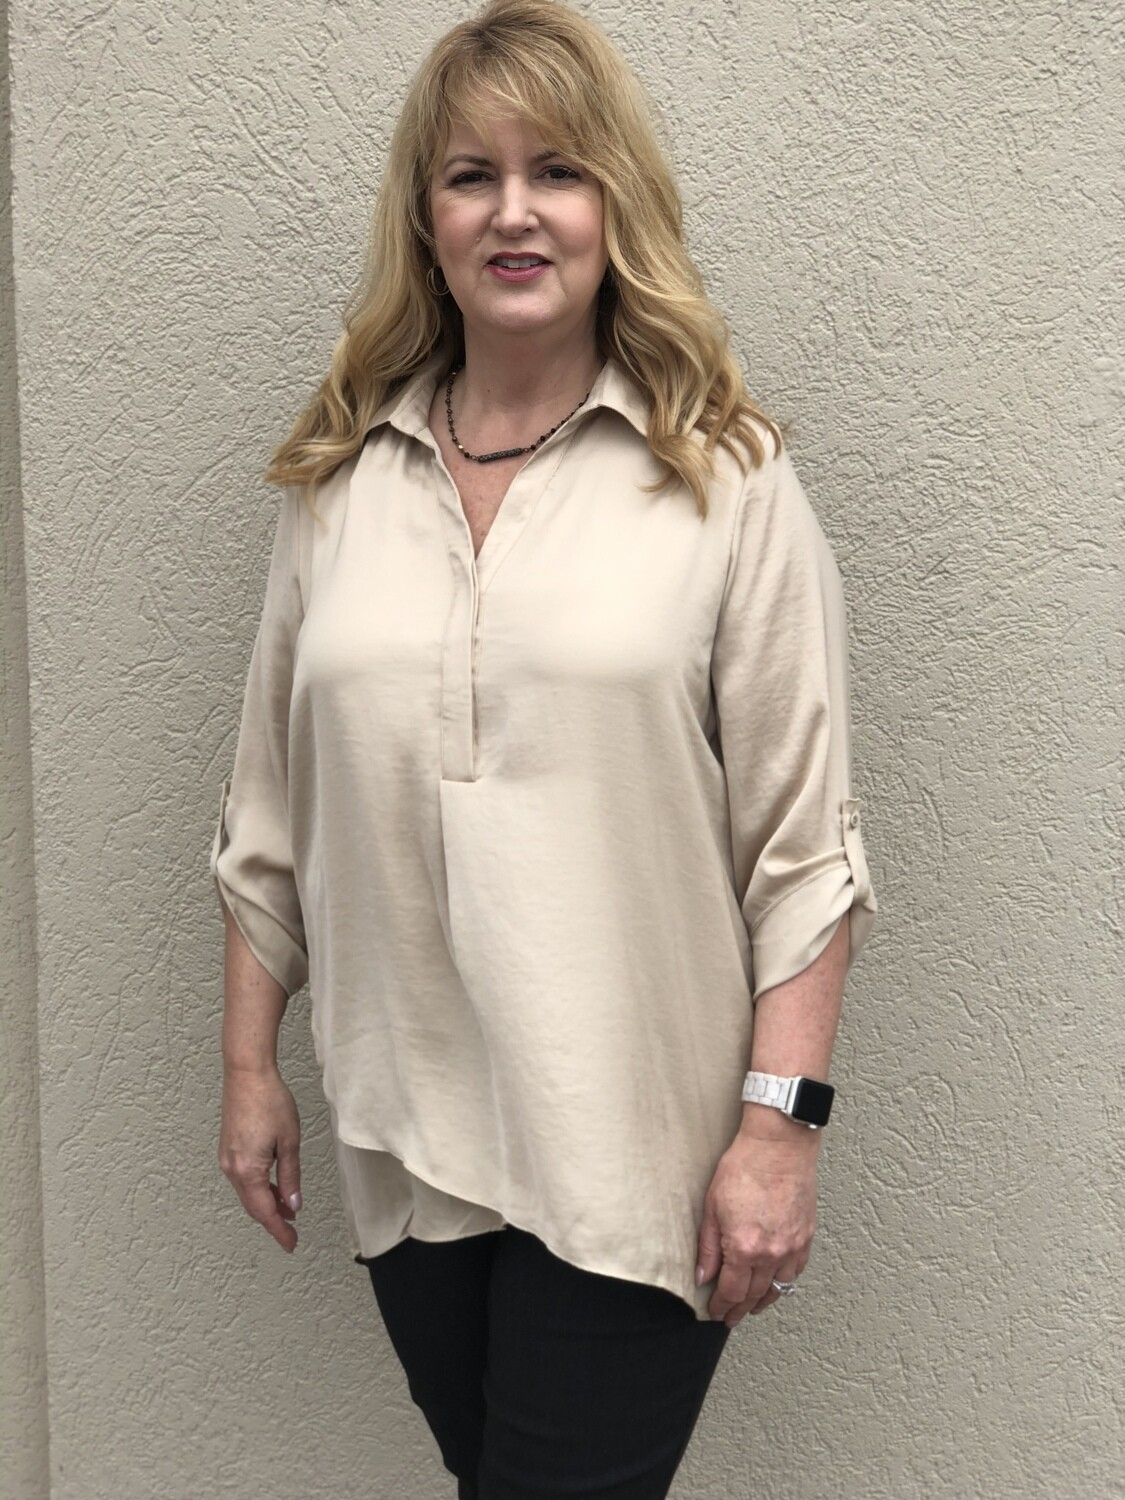 R5517 Airflow Blouse in Sand